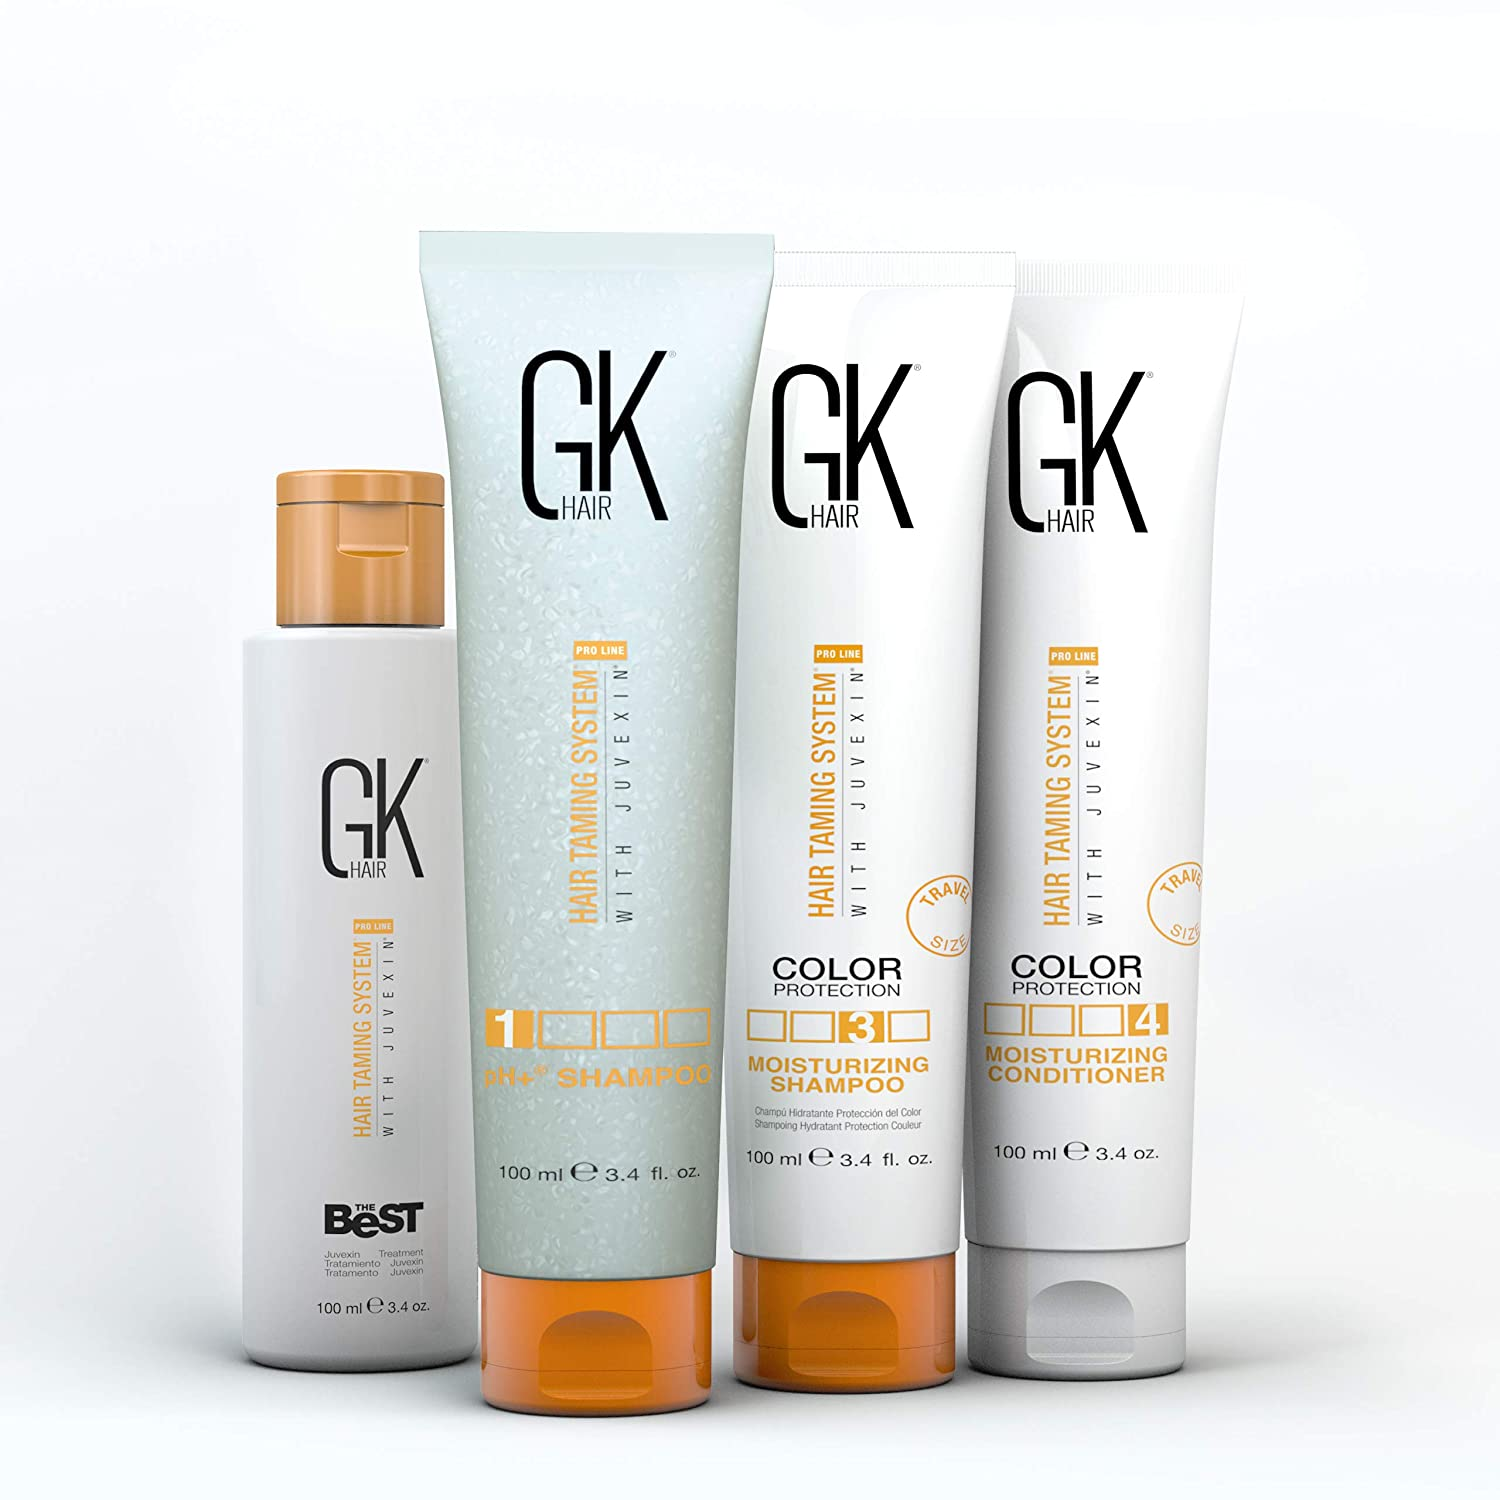 Global Keratin GKhair The Best Professional Hair Straightening / Taming / Smoothing Treatment (3.3oz/100ml) Removes Frizz   Silky, Smooth & Natural Hair - Formaldehyde Free TIBOLLI LLC GKH JT 420 30